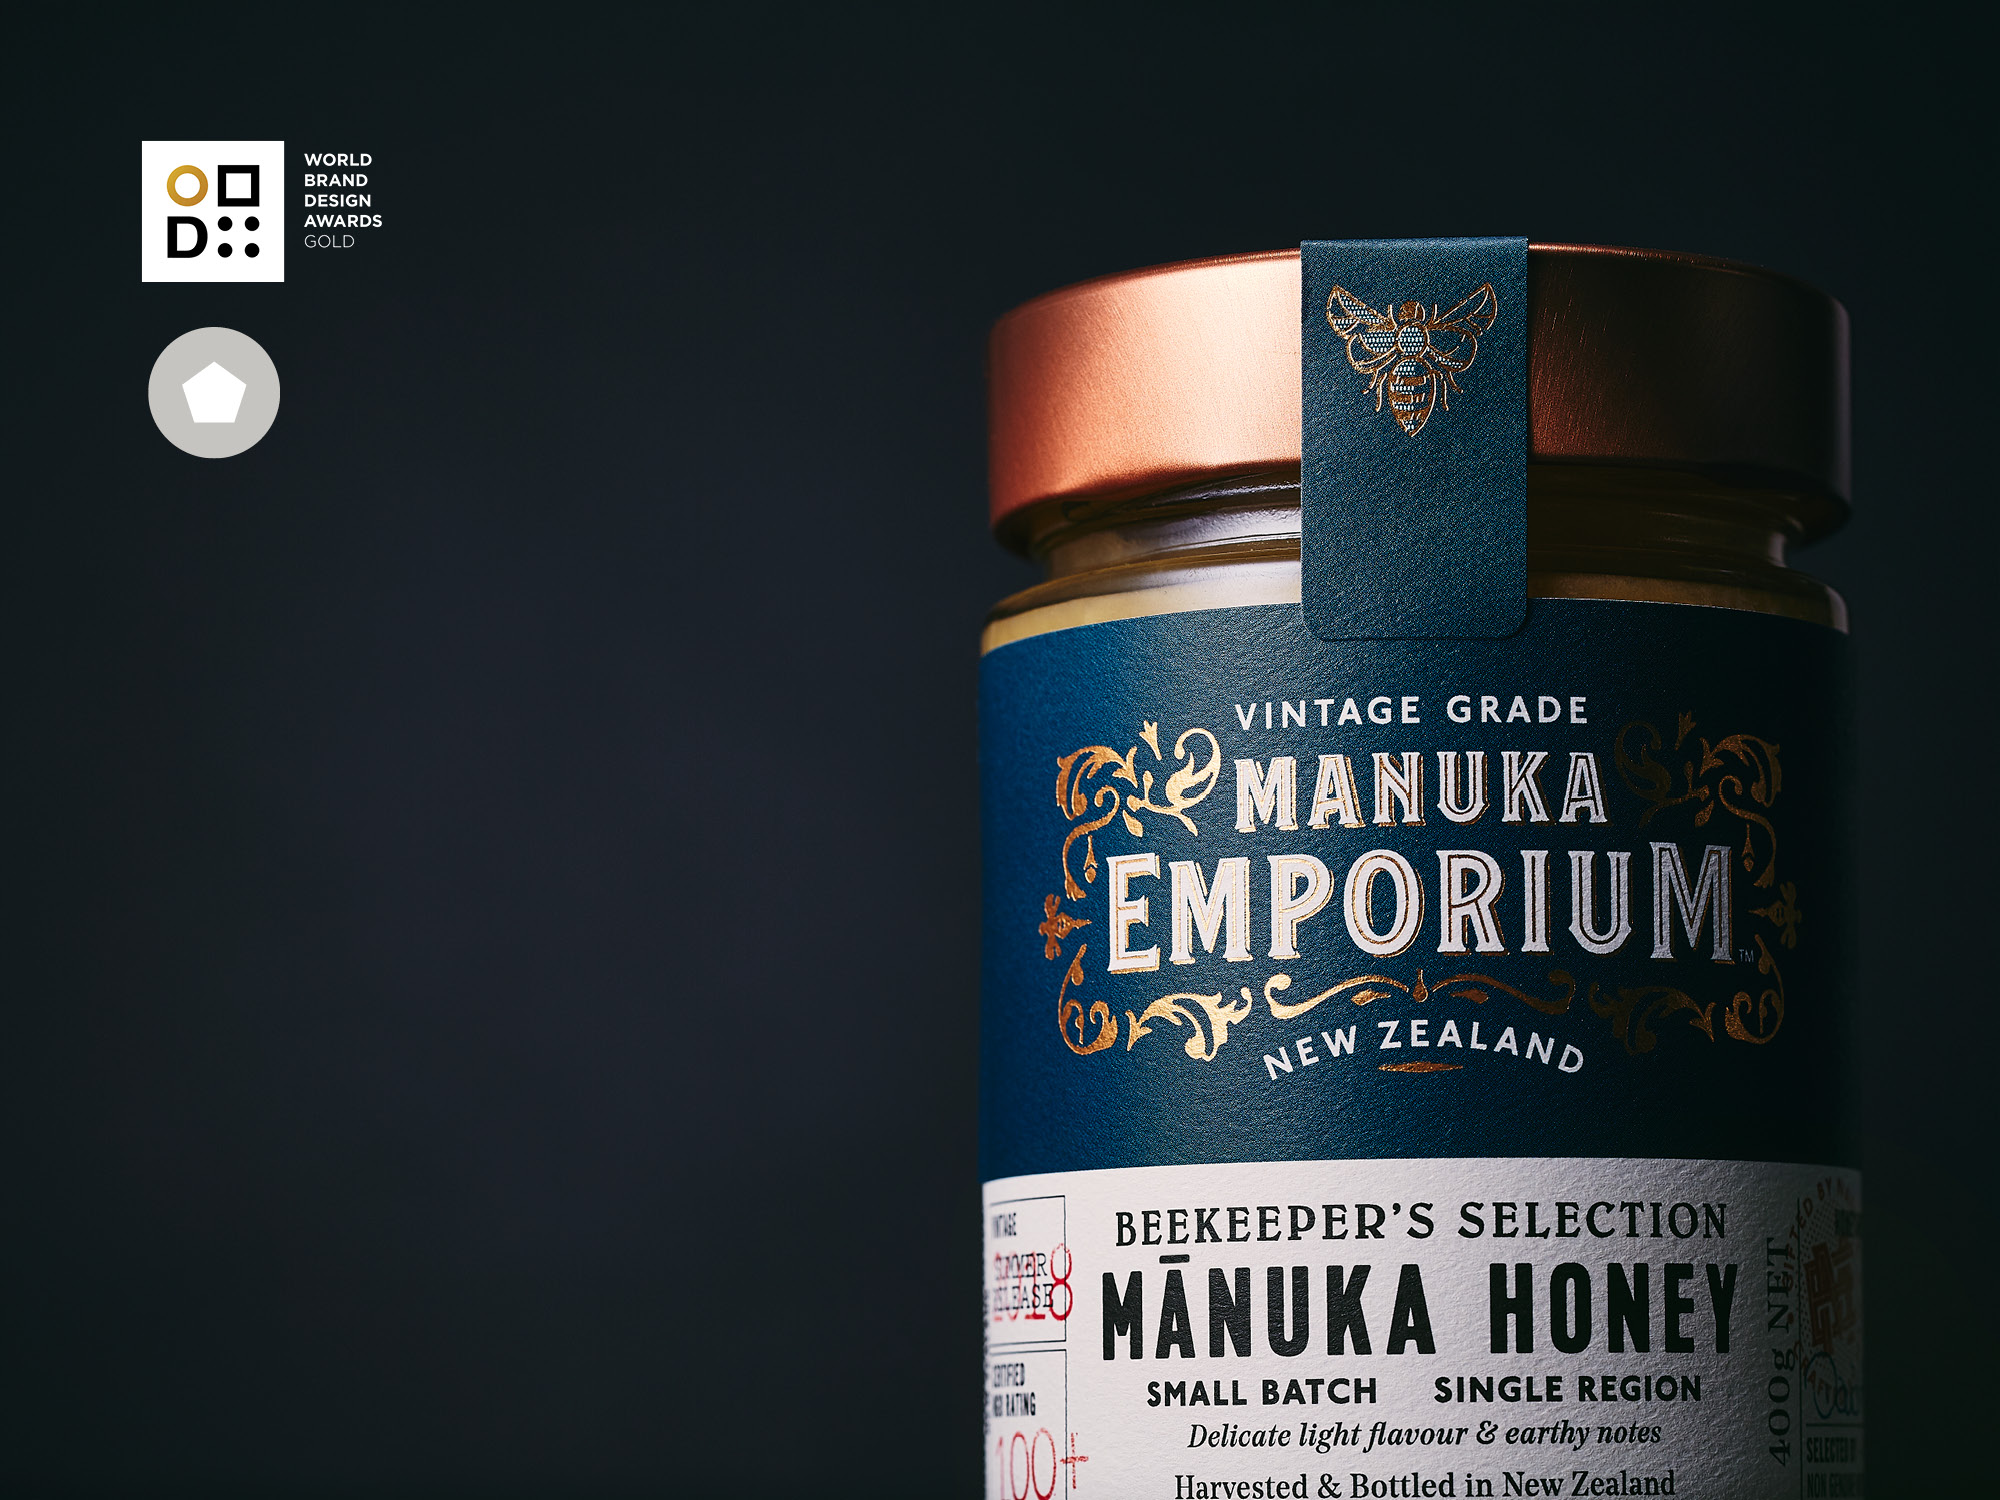 Onfire Design Manuka Emporium Honey Packaging Branding Design 3.2